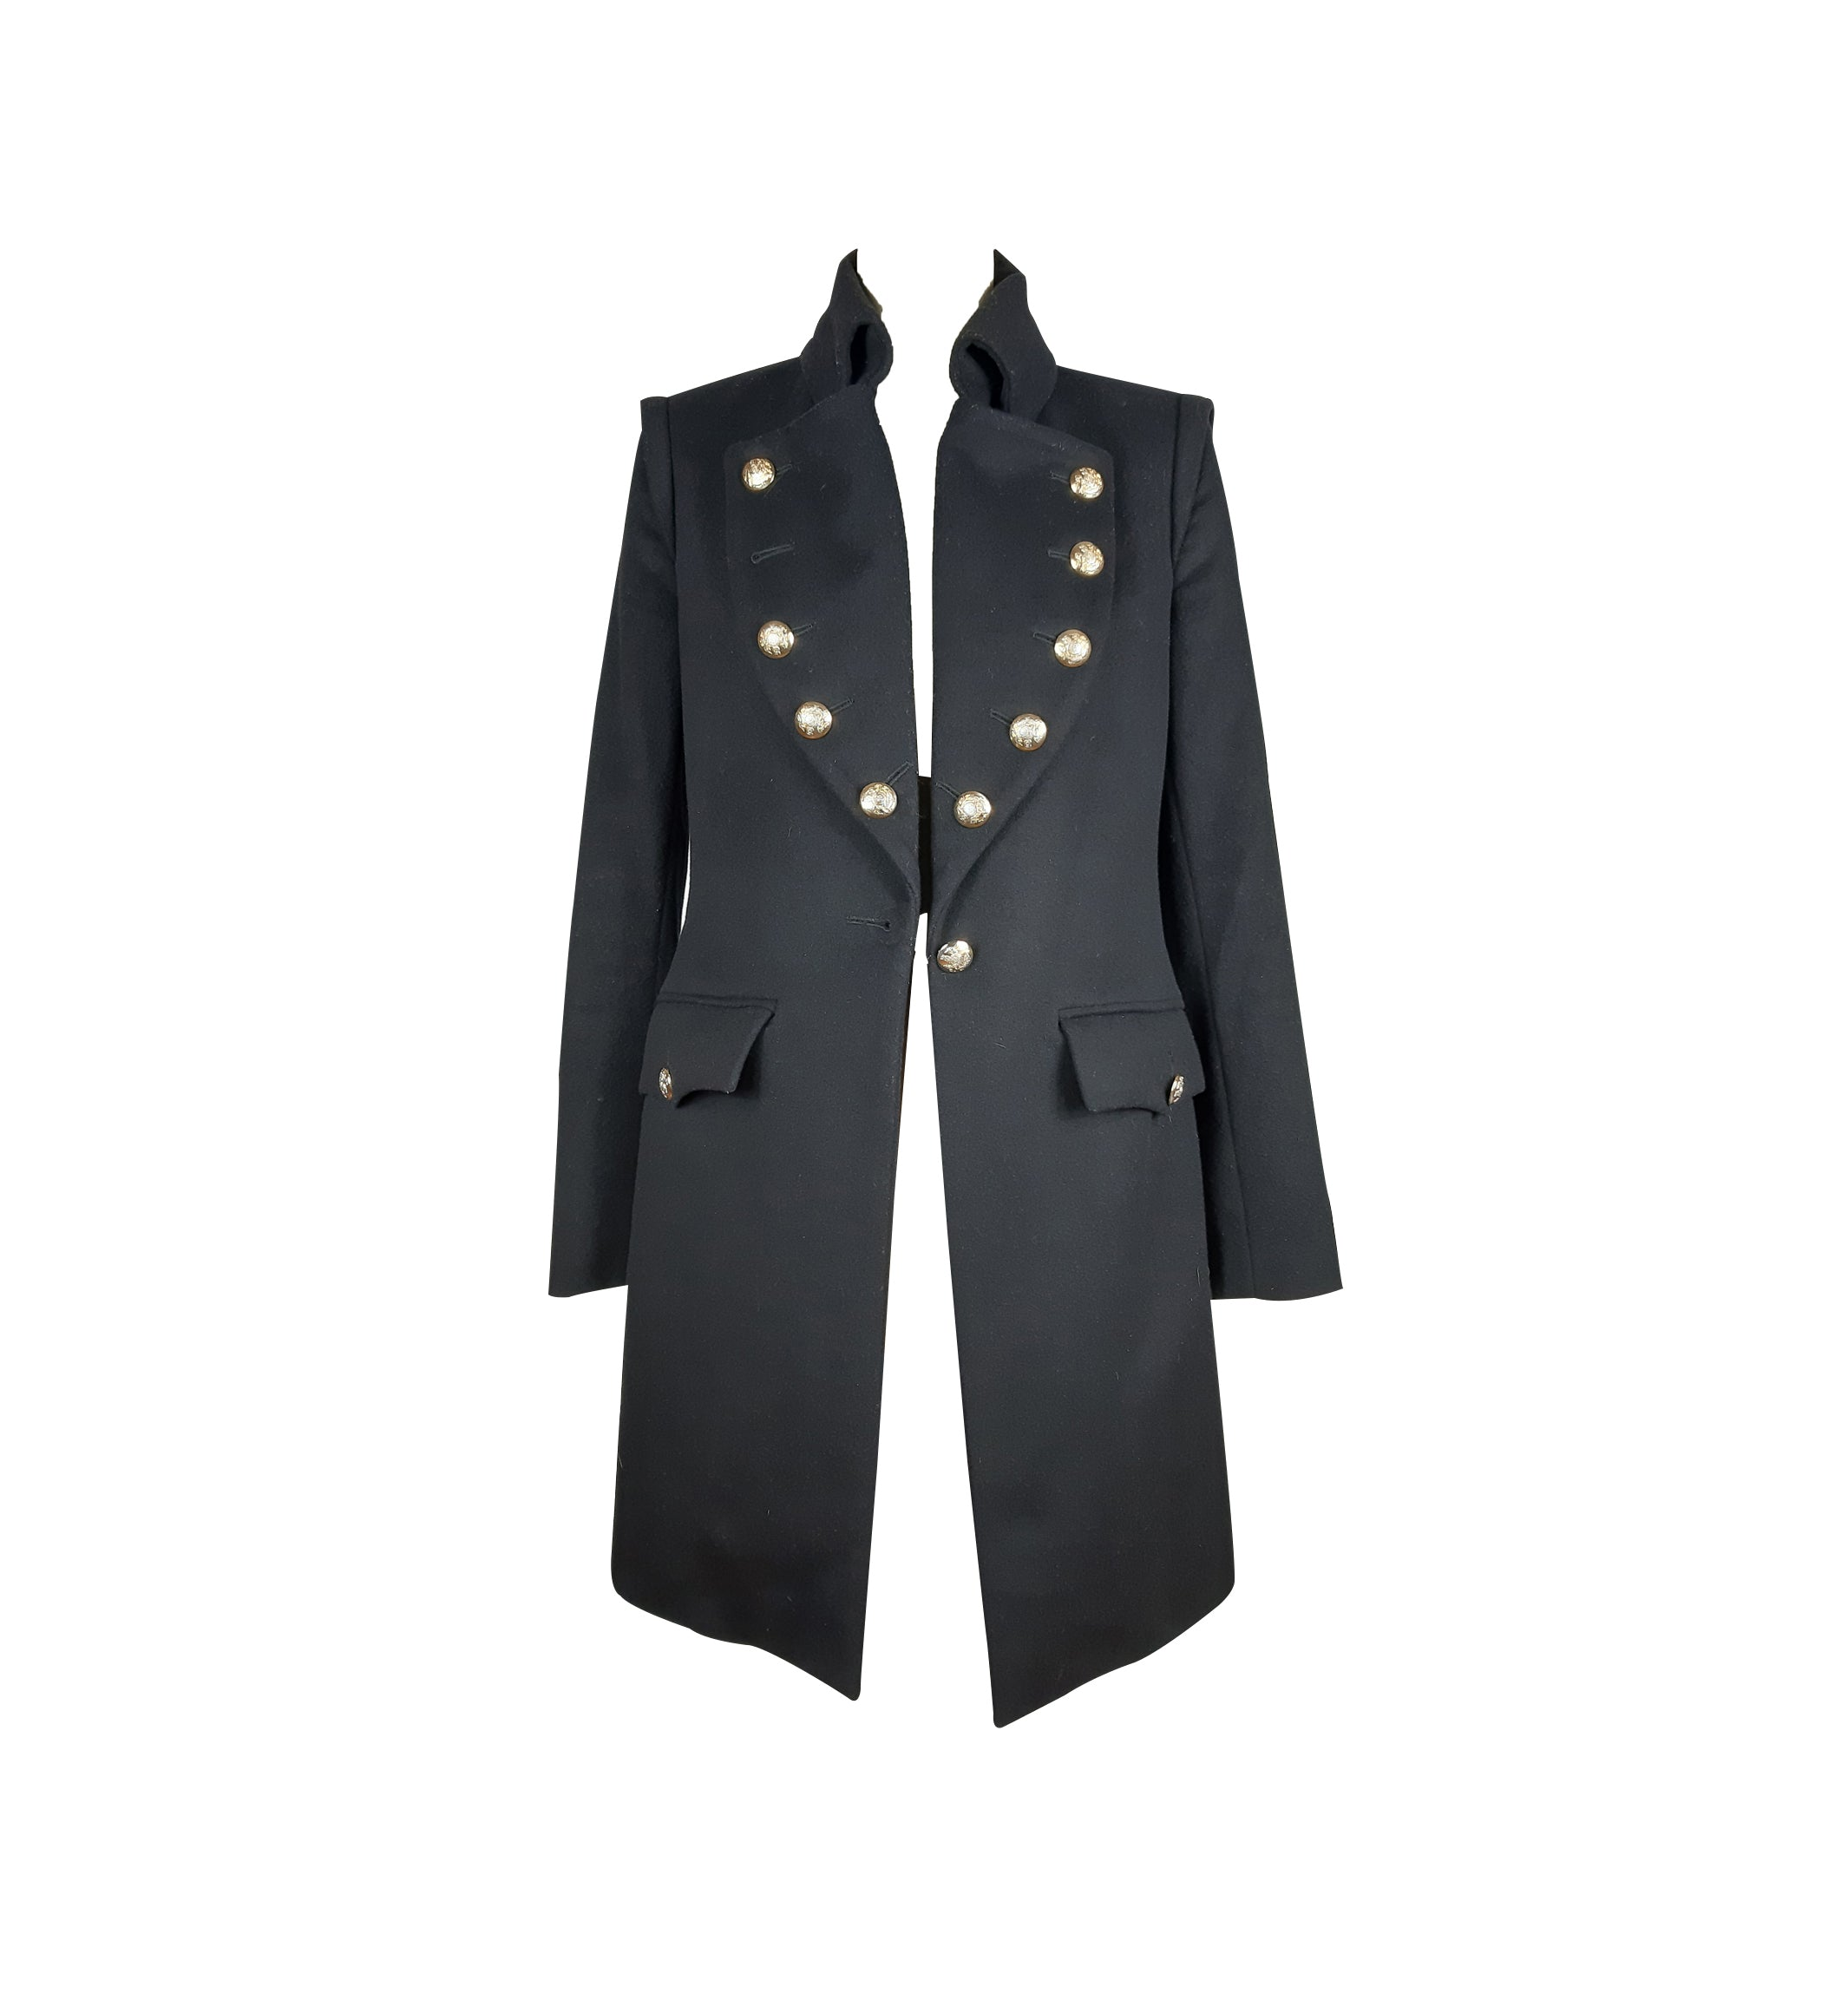 ADELE FADO Made in Italy Navy Blue Military Inspired Coat with Gold Detailing Size 38 (EU)